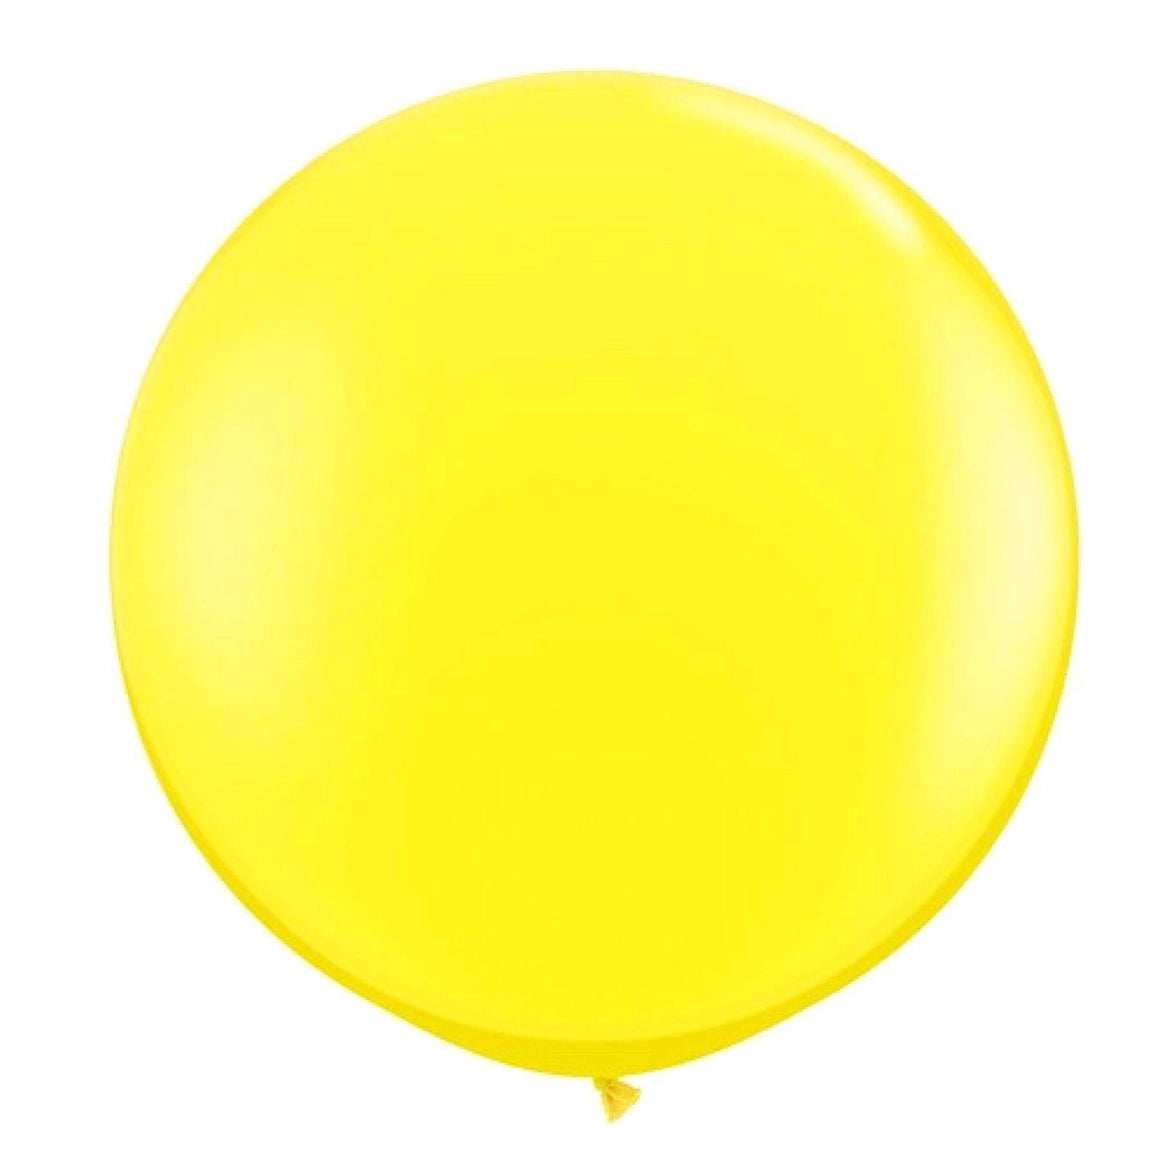 "BALLOON BAR - 36"" JUMBO ROUND BRIGHT YELLOW, Balloons, QUALATEX - Bon + Co. Party Studio"